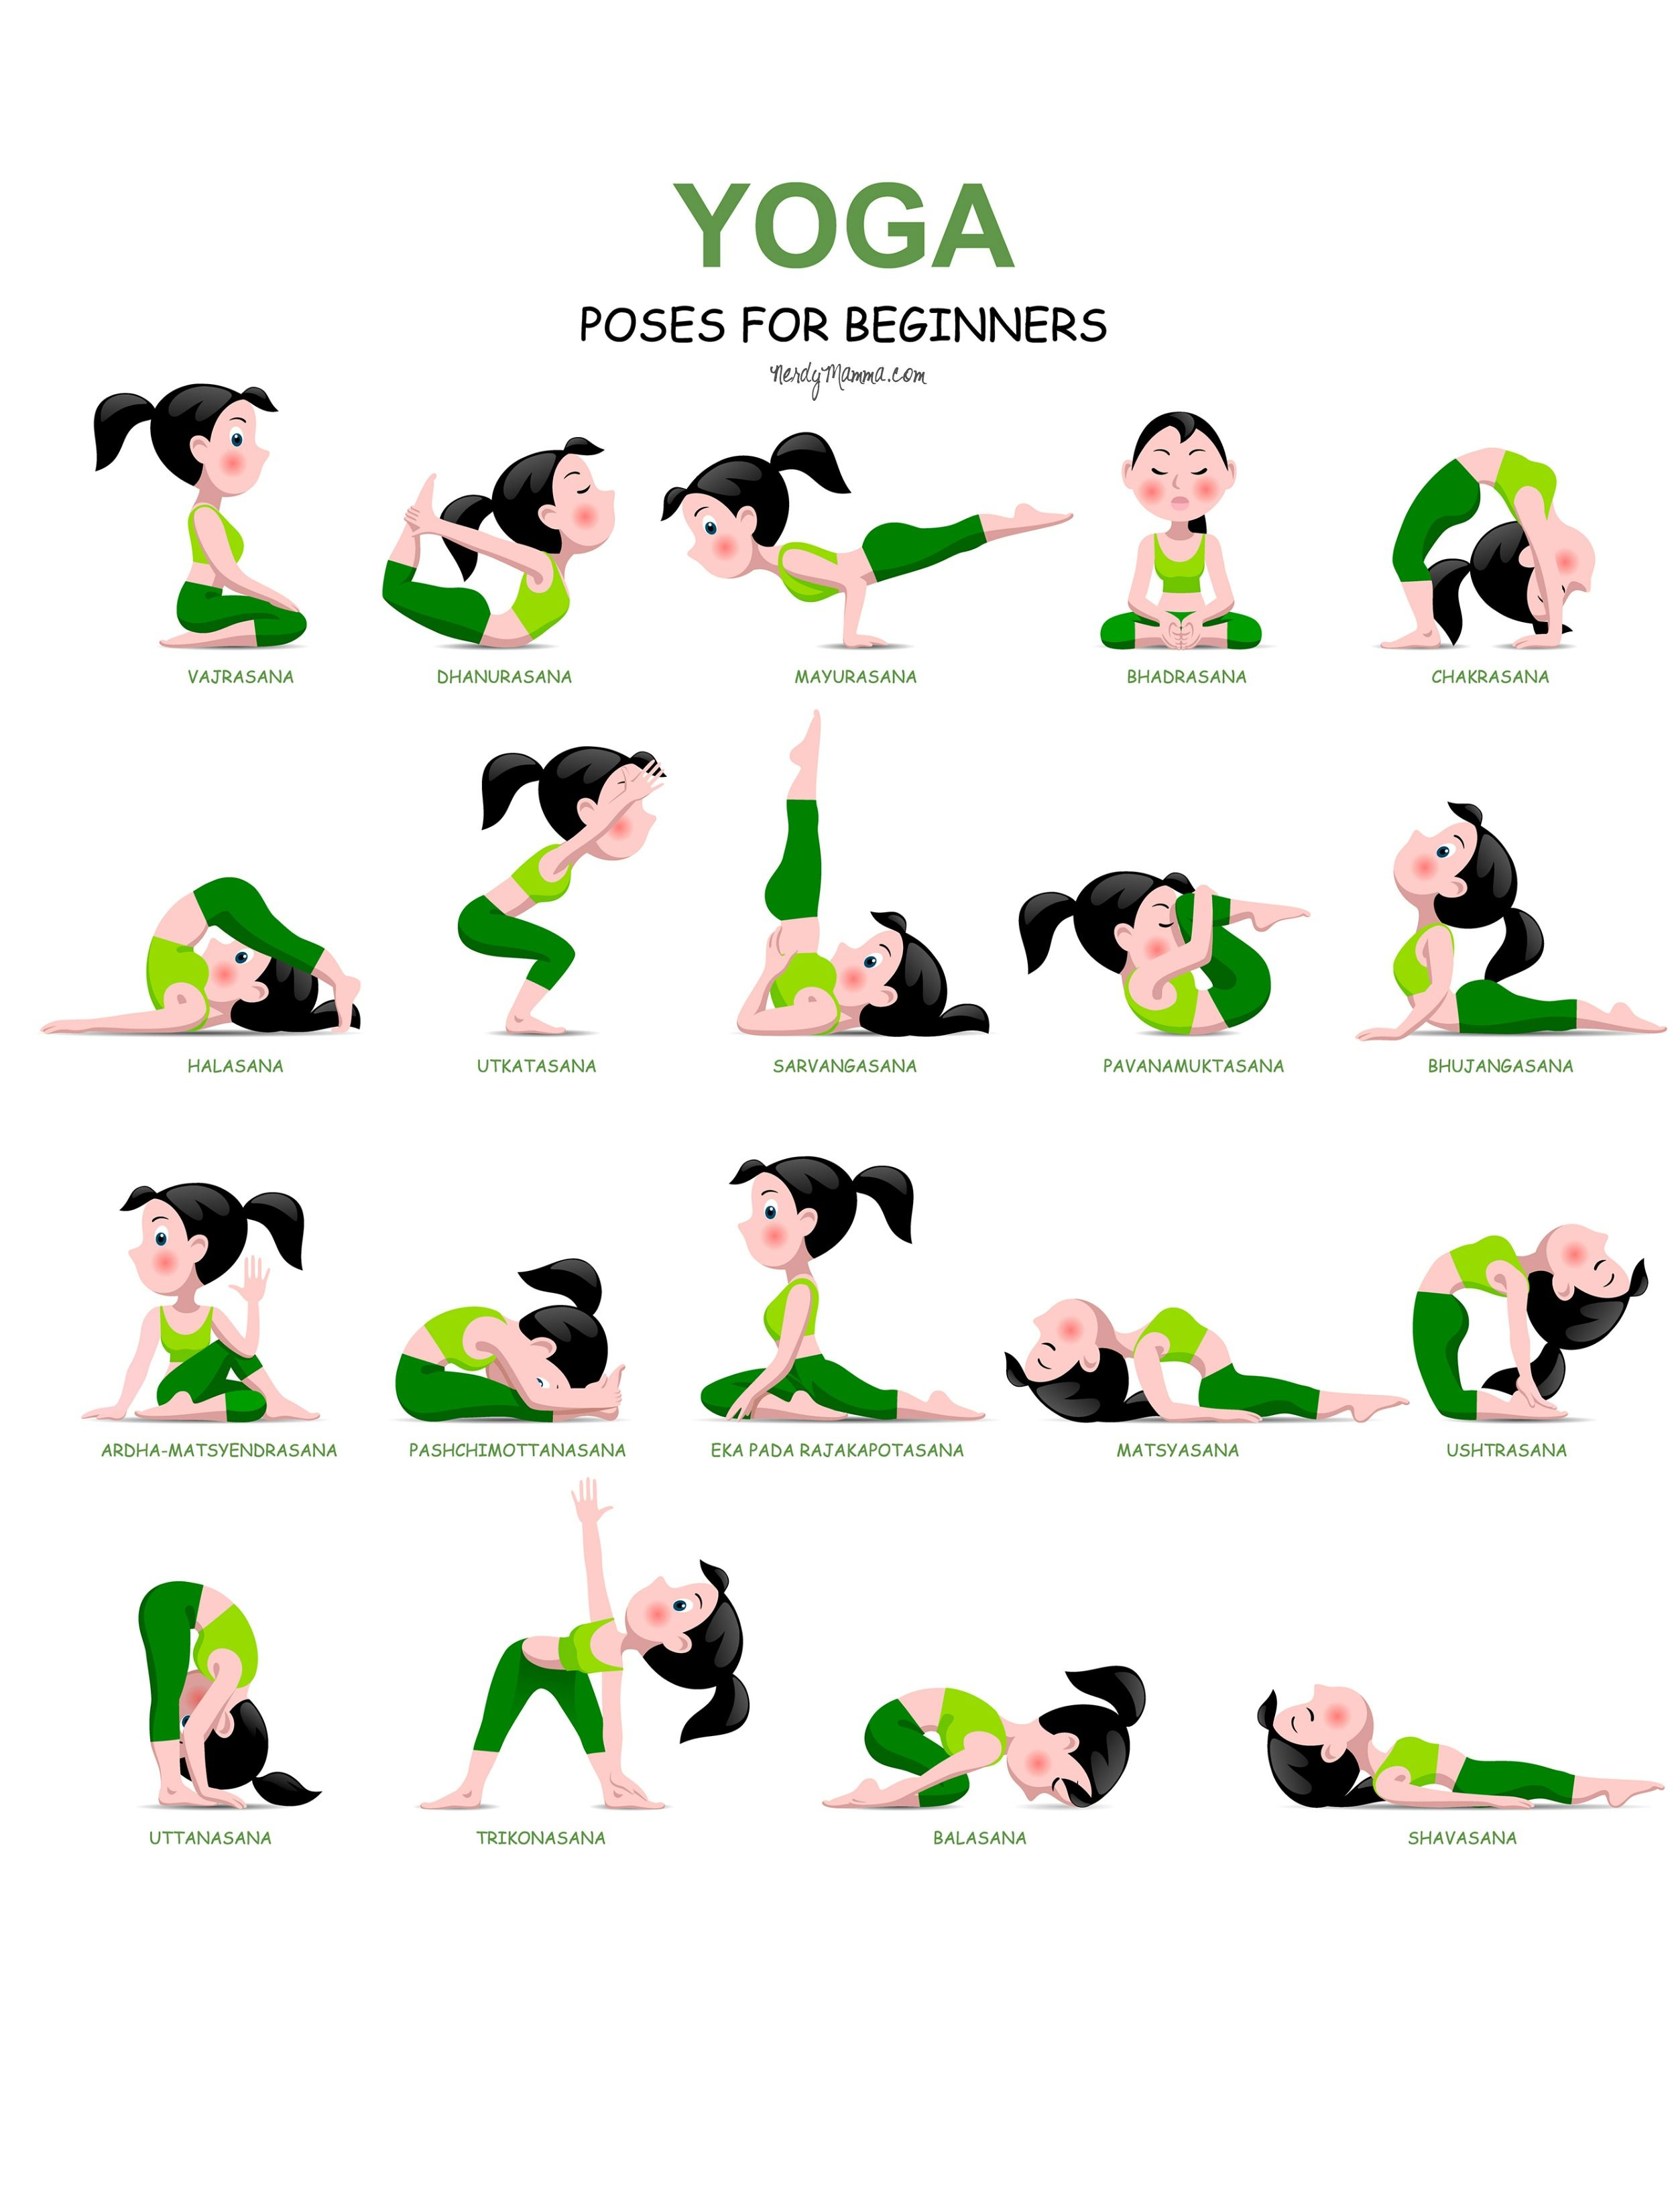 Pin by Moriah Garcia on I work out Pinterest Yoga Yoga poses